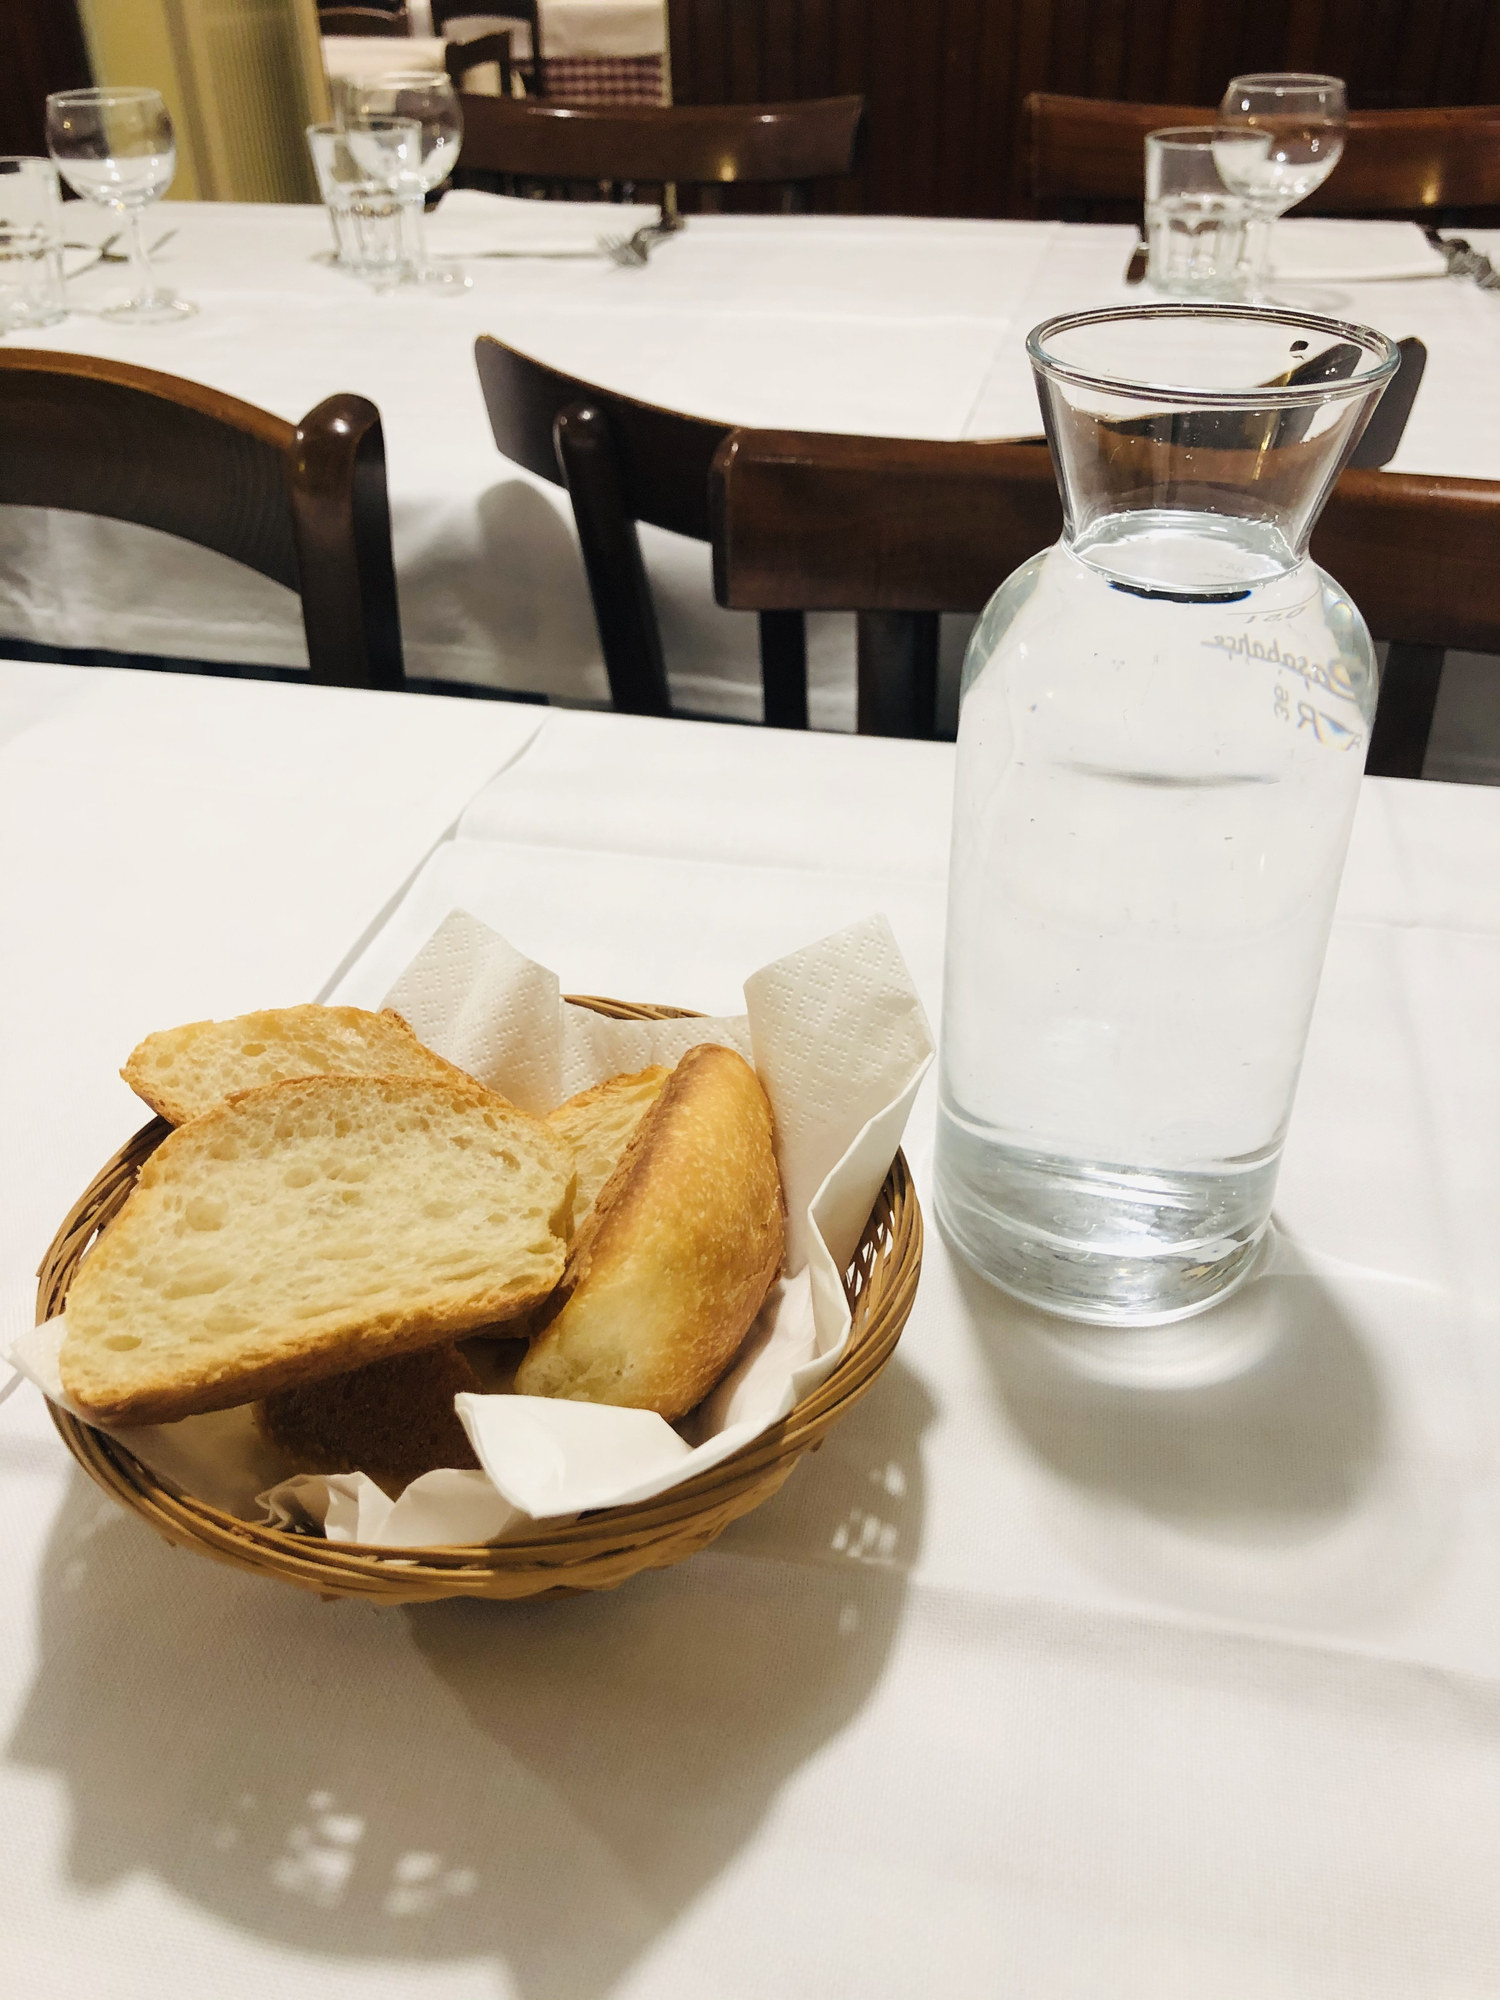 A bread basket on a table at a restaurant.